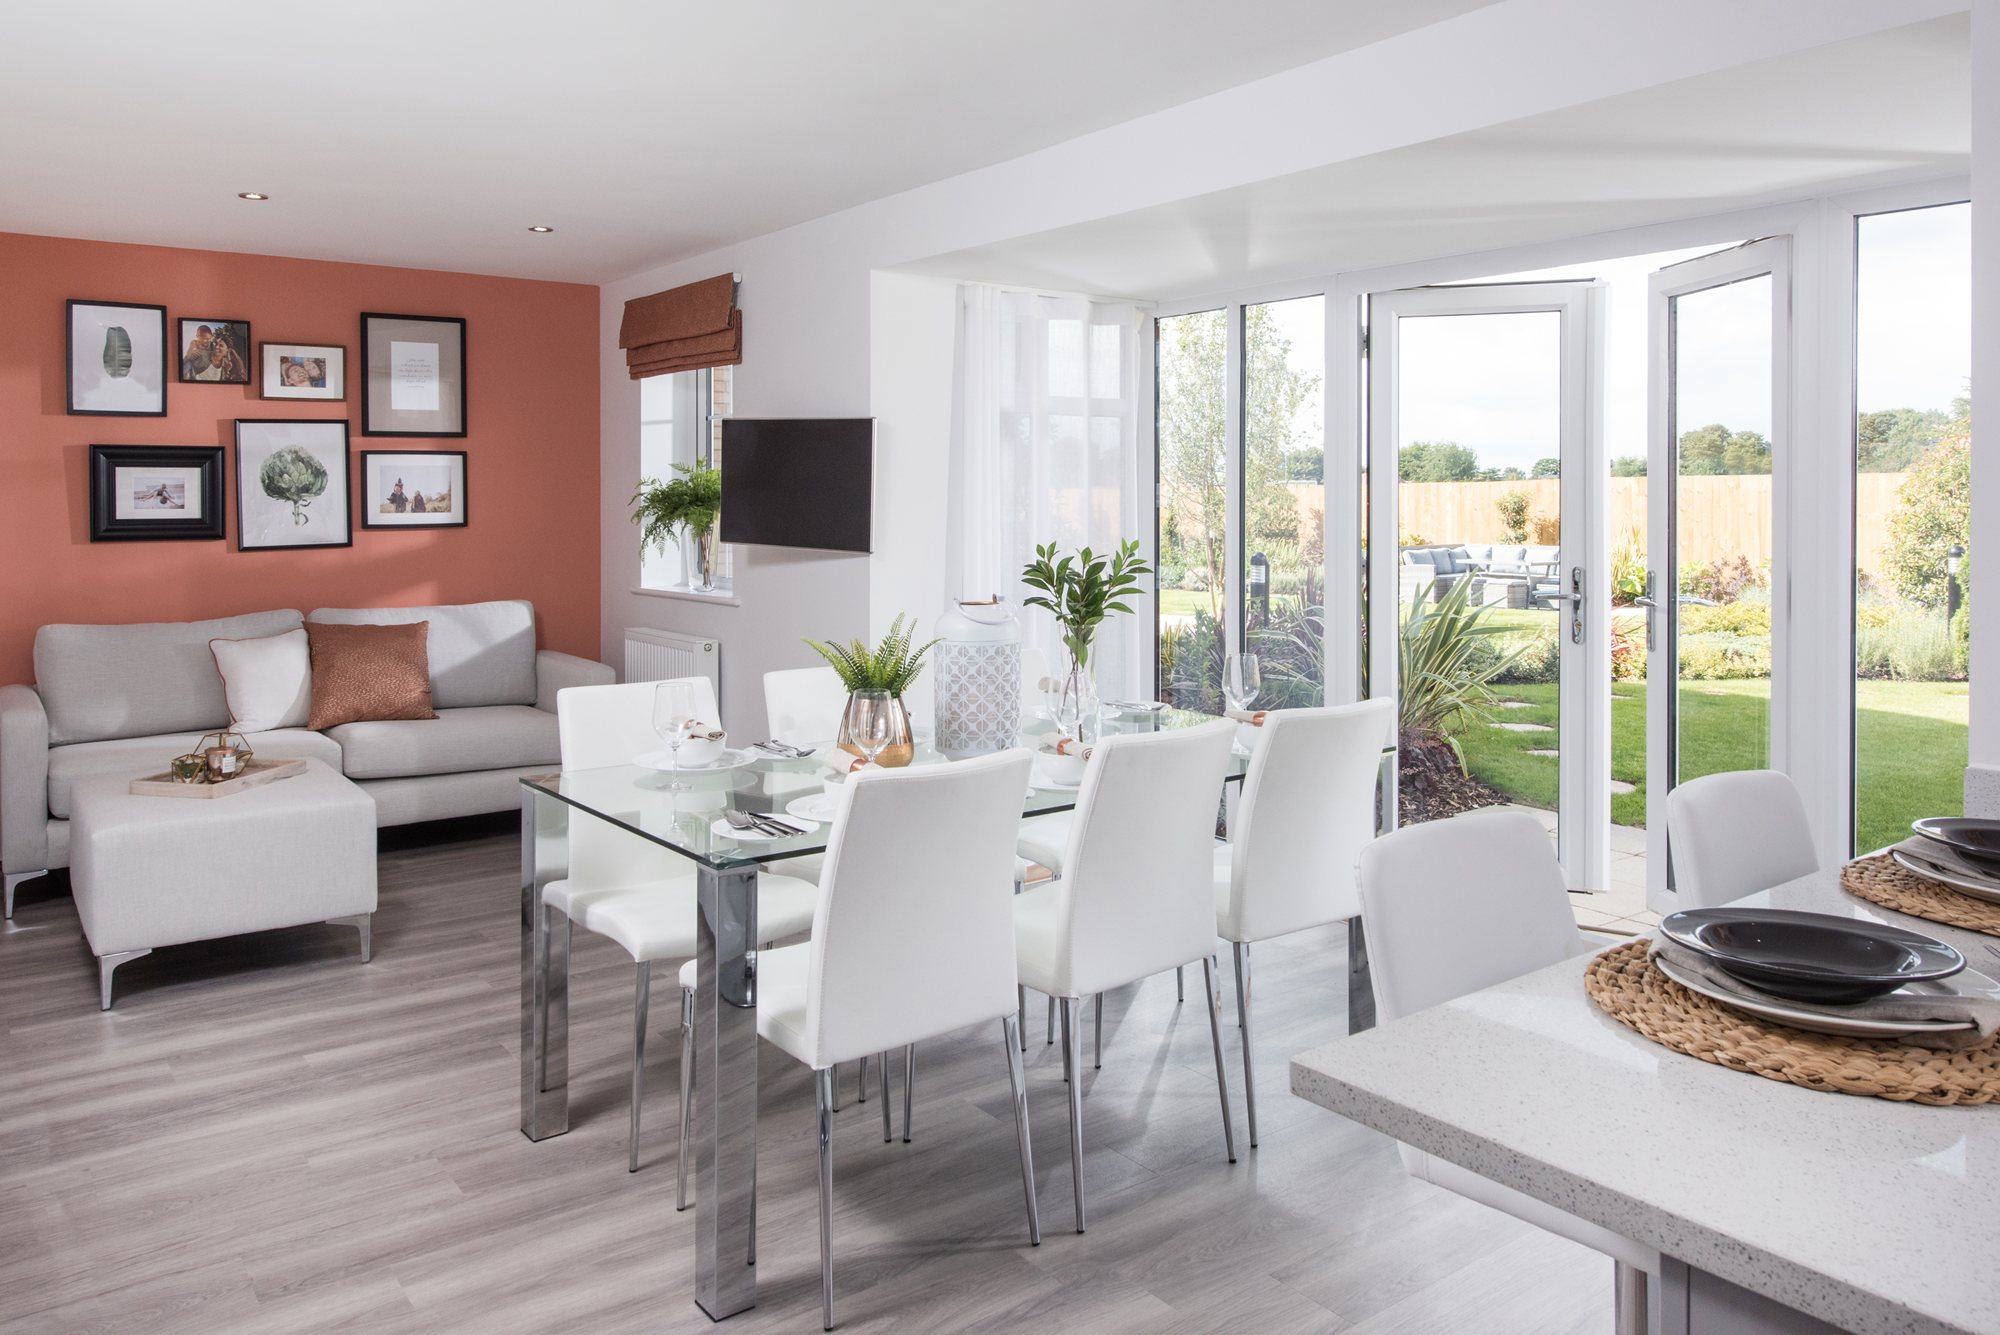 Open-plan kitchen diner and family area with glazed bay